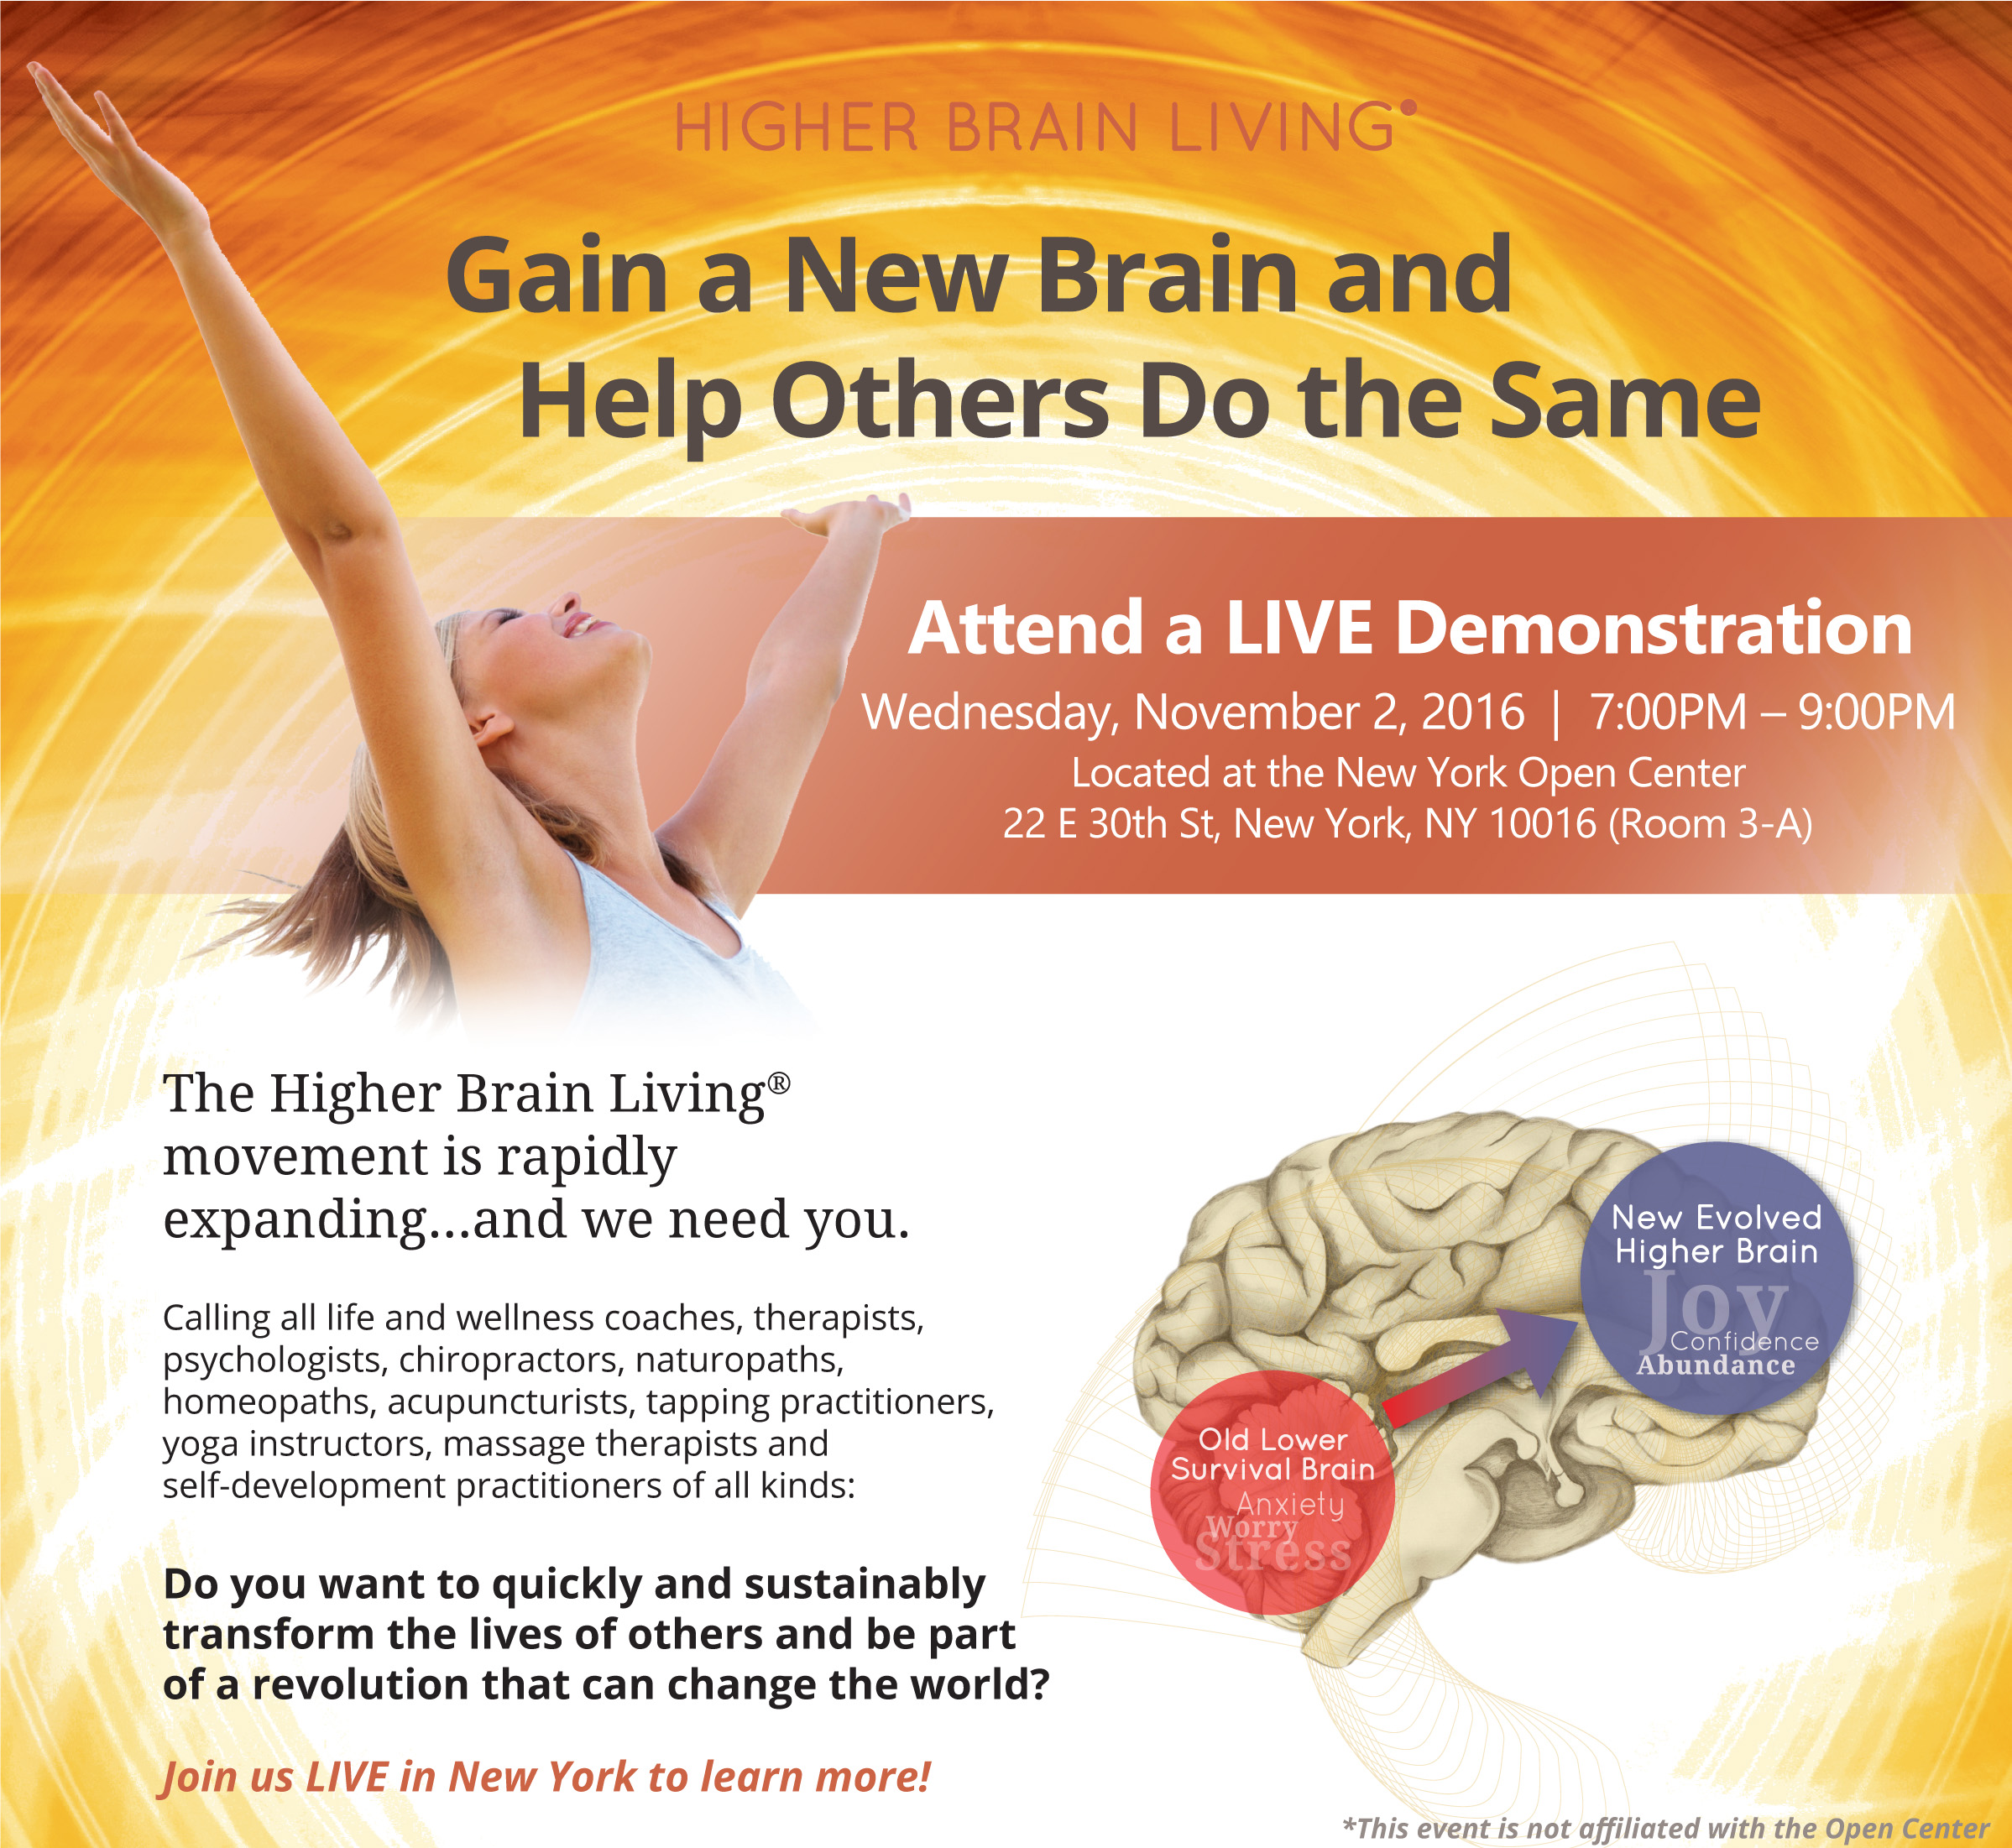 Live Higher Brain Living Demo in NYC, Nov. 2, 7-9 at Open Center